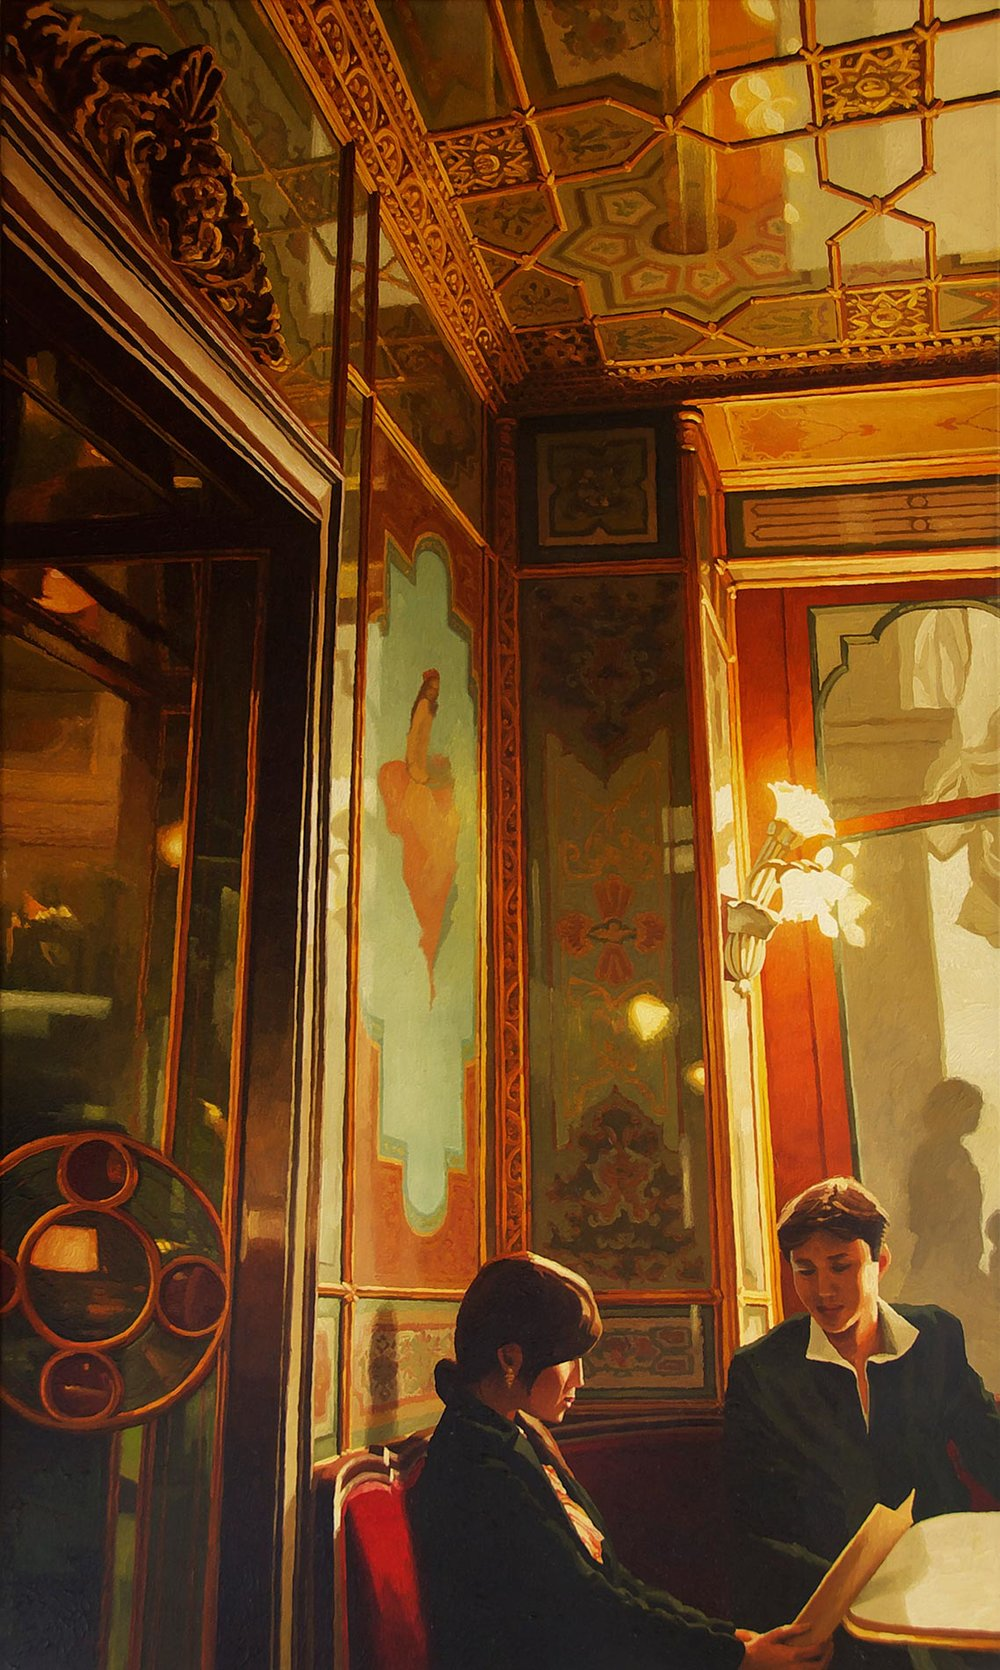 The Cafe Florian in Venice with a Japanese couple